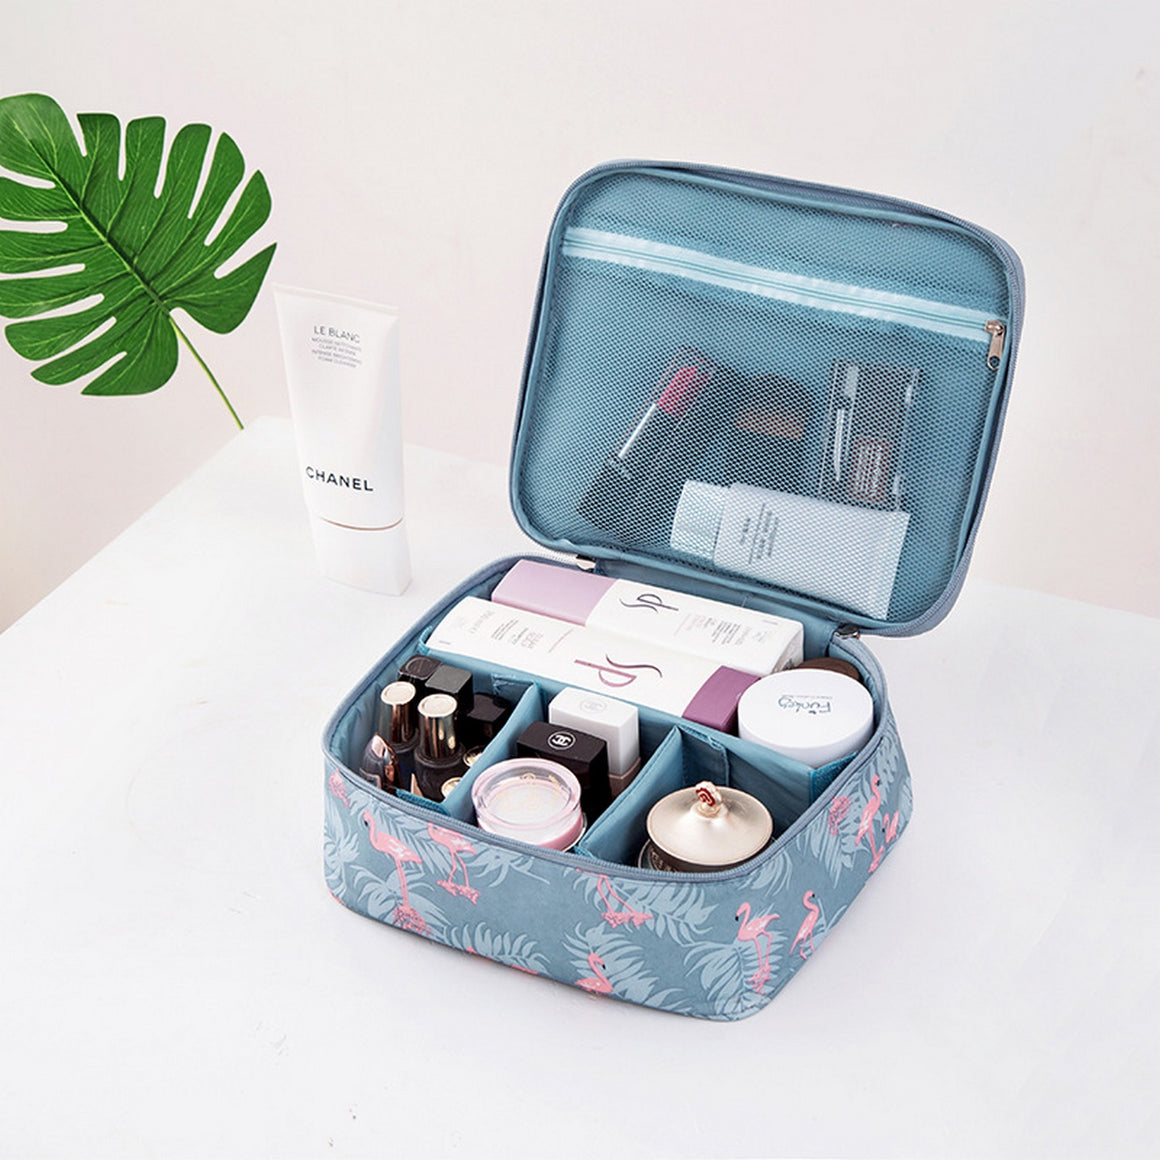 Brand Flamingo Series Travel Portable Cosmetic Bag, DIY Organizer Makeup Bag For Women Cosmetics Men Shaving Kit,Free Shipping